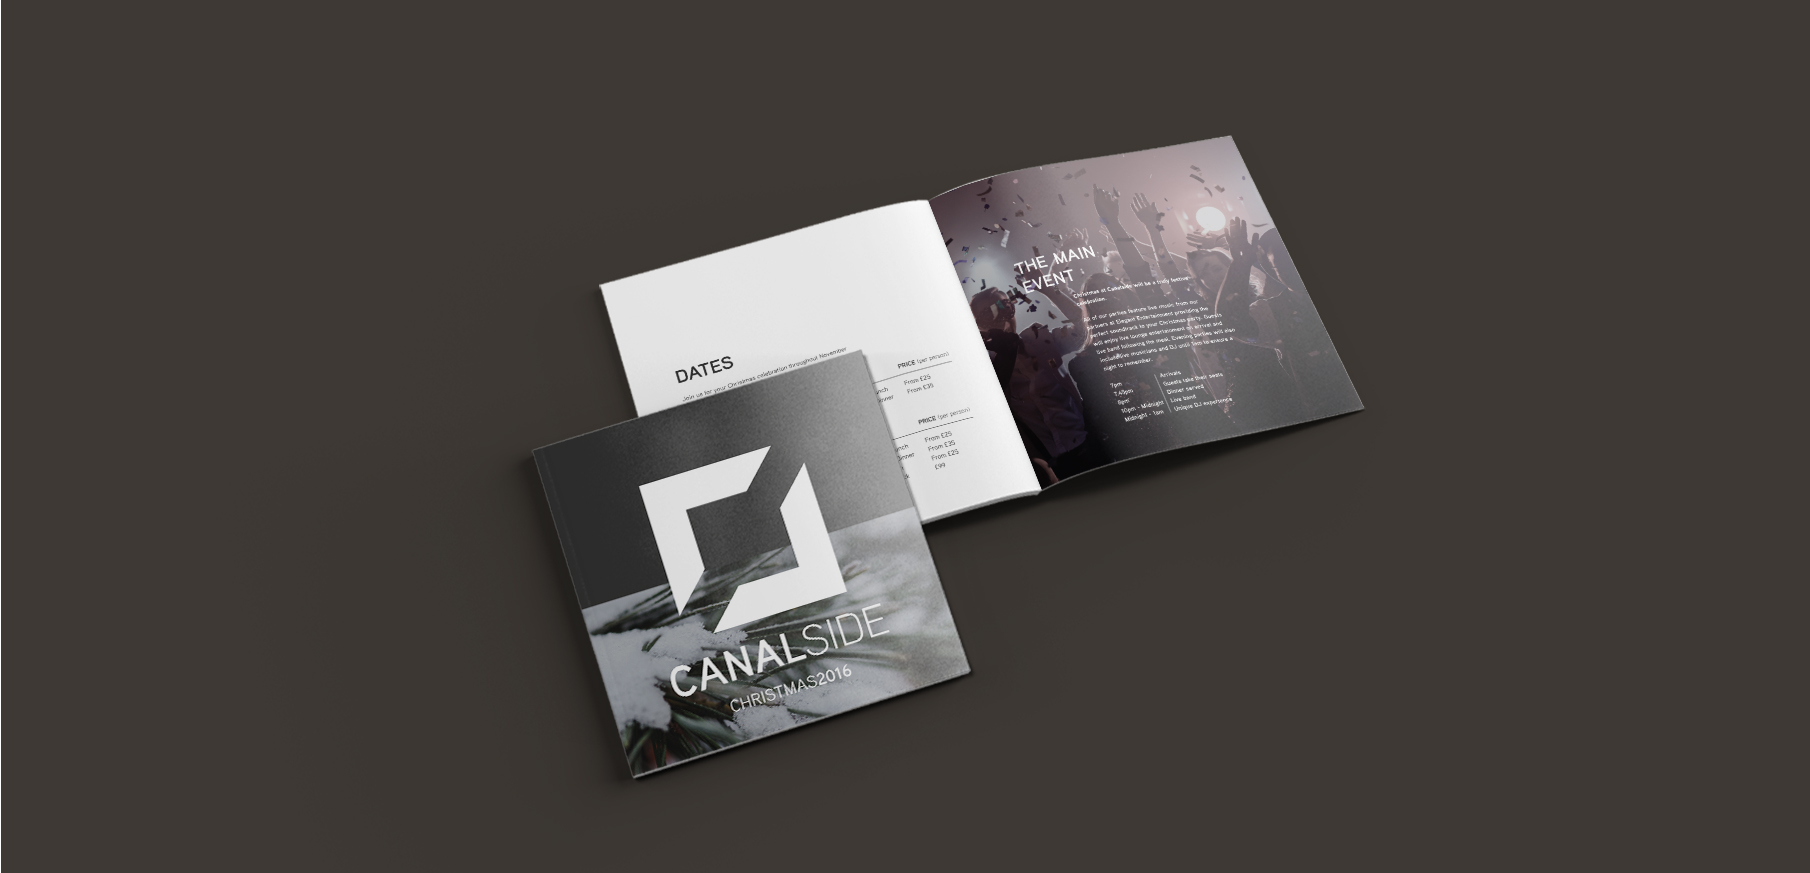 An image of Canalside's brochure design